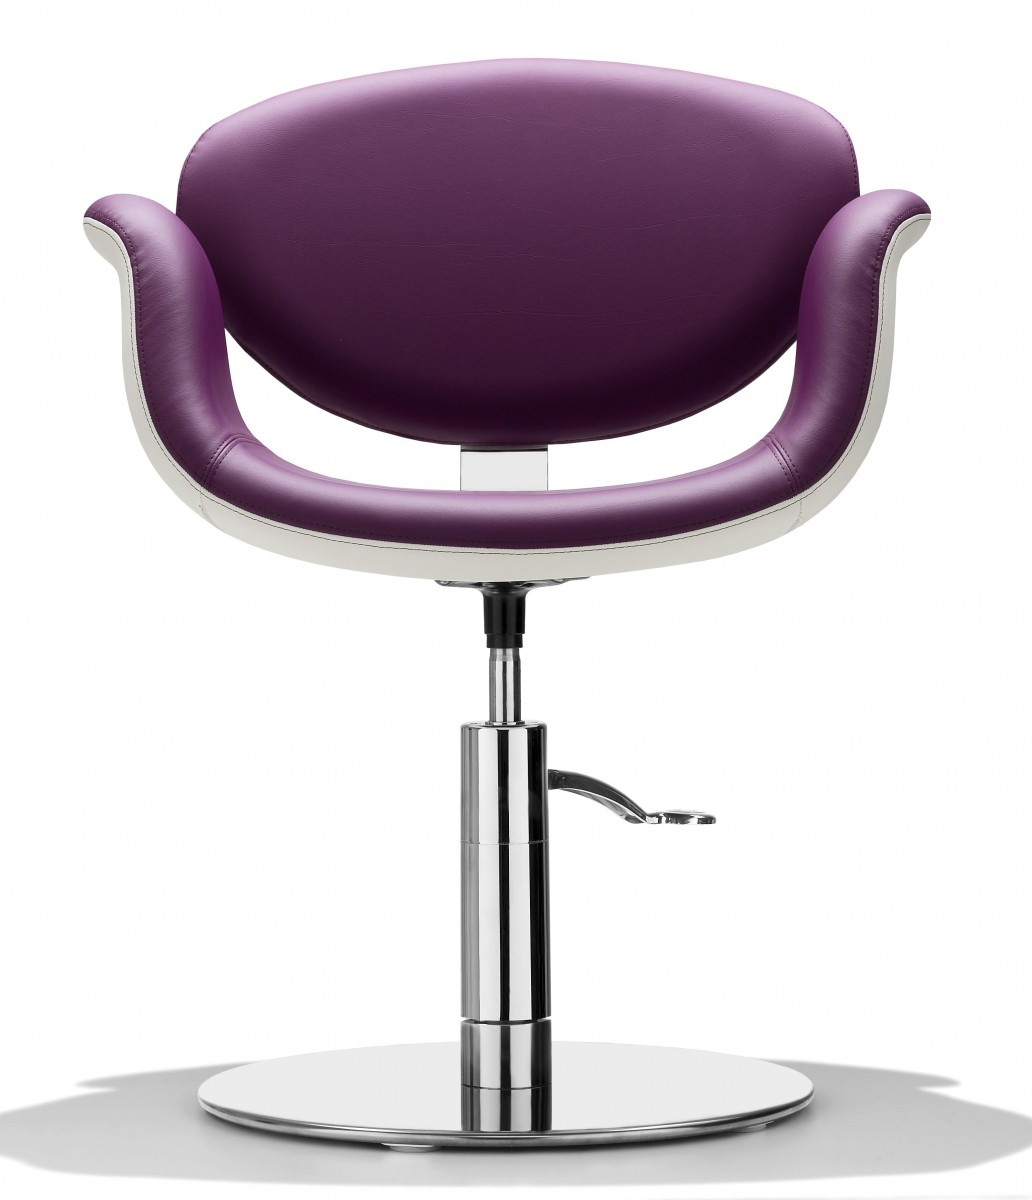 Karisma stuhl wave cde salondesign for Design stuhl wave